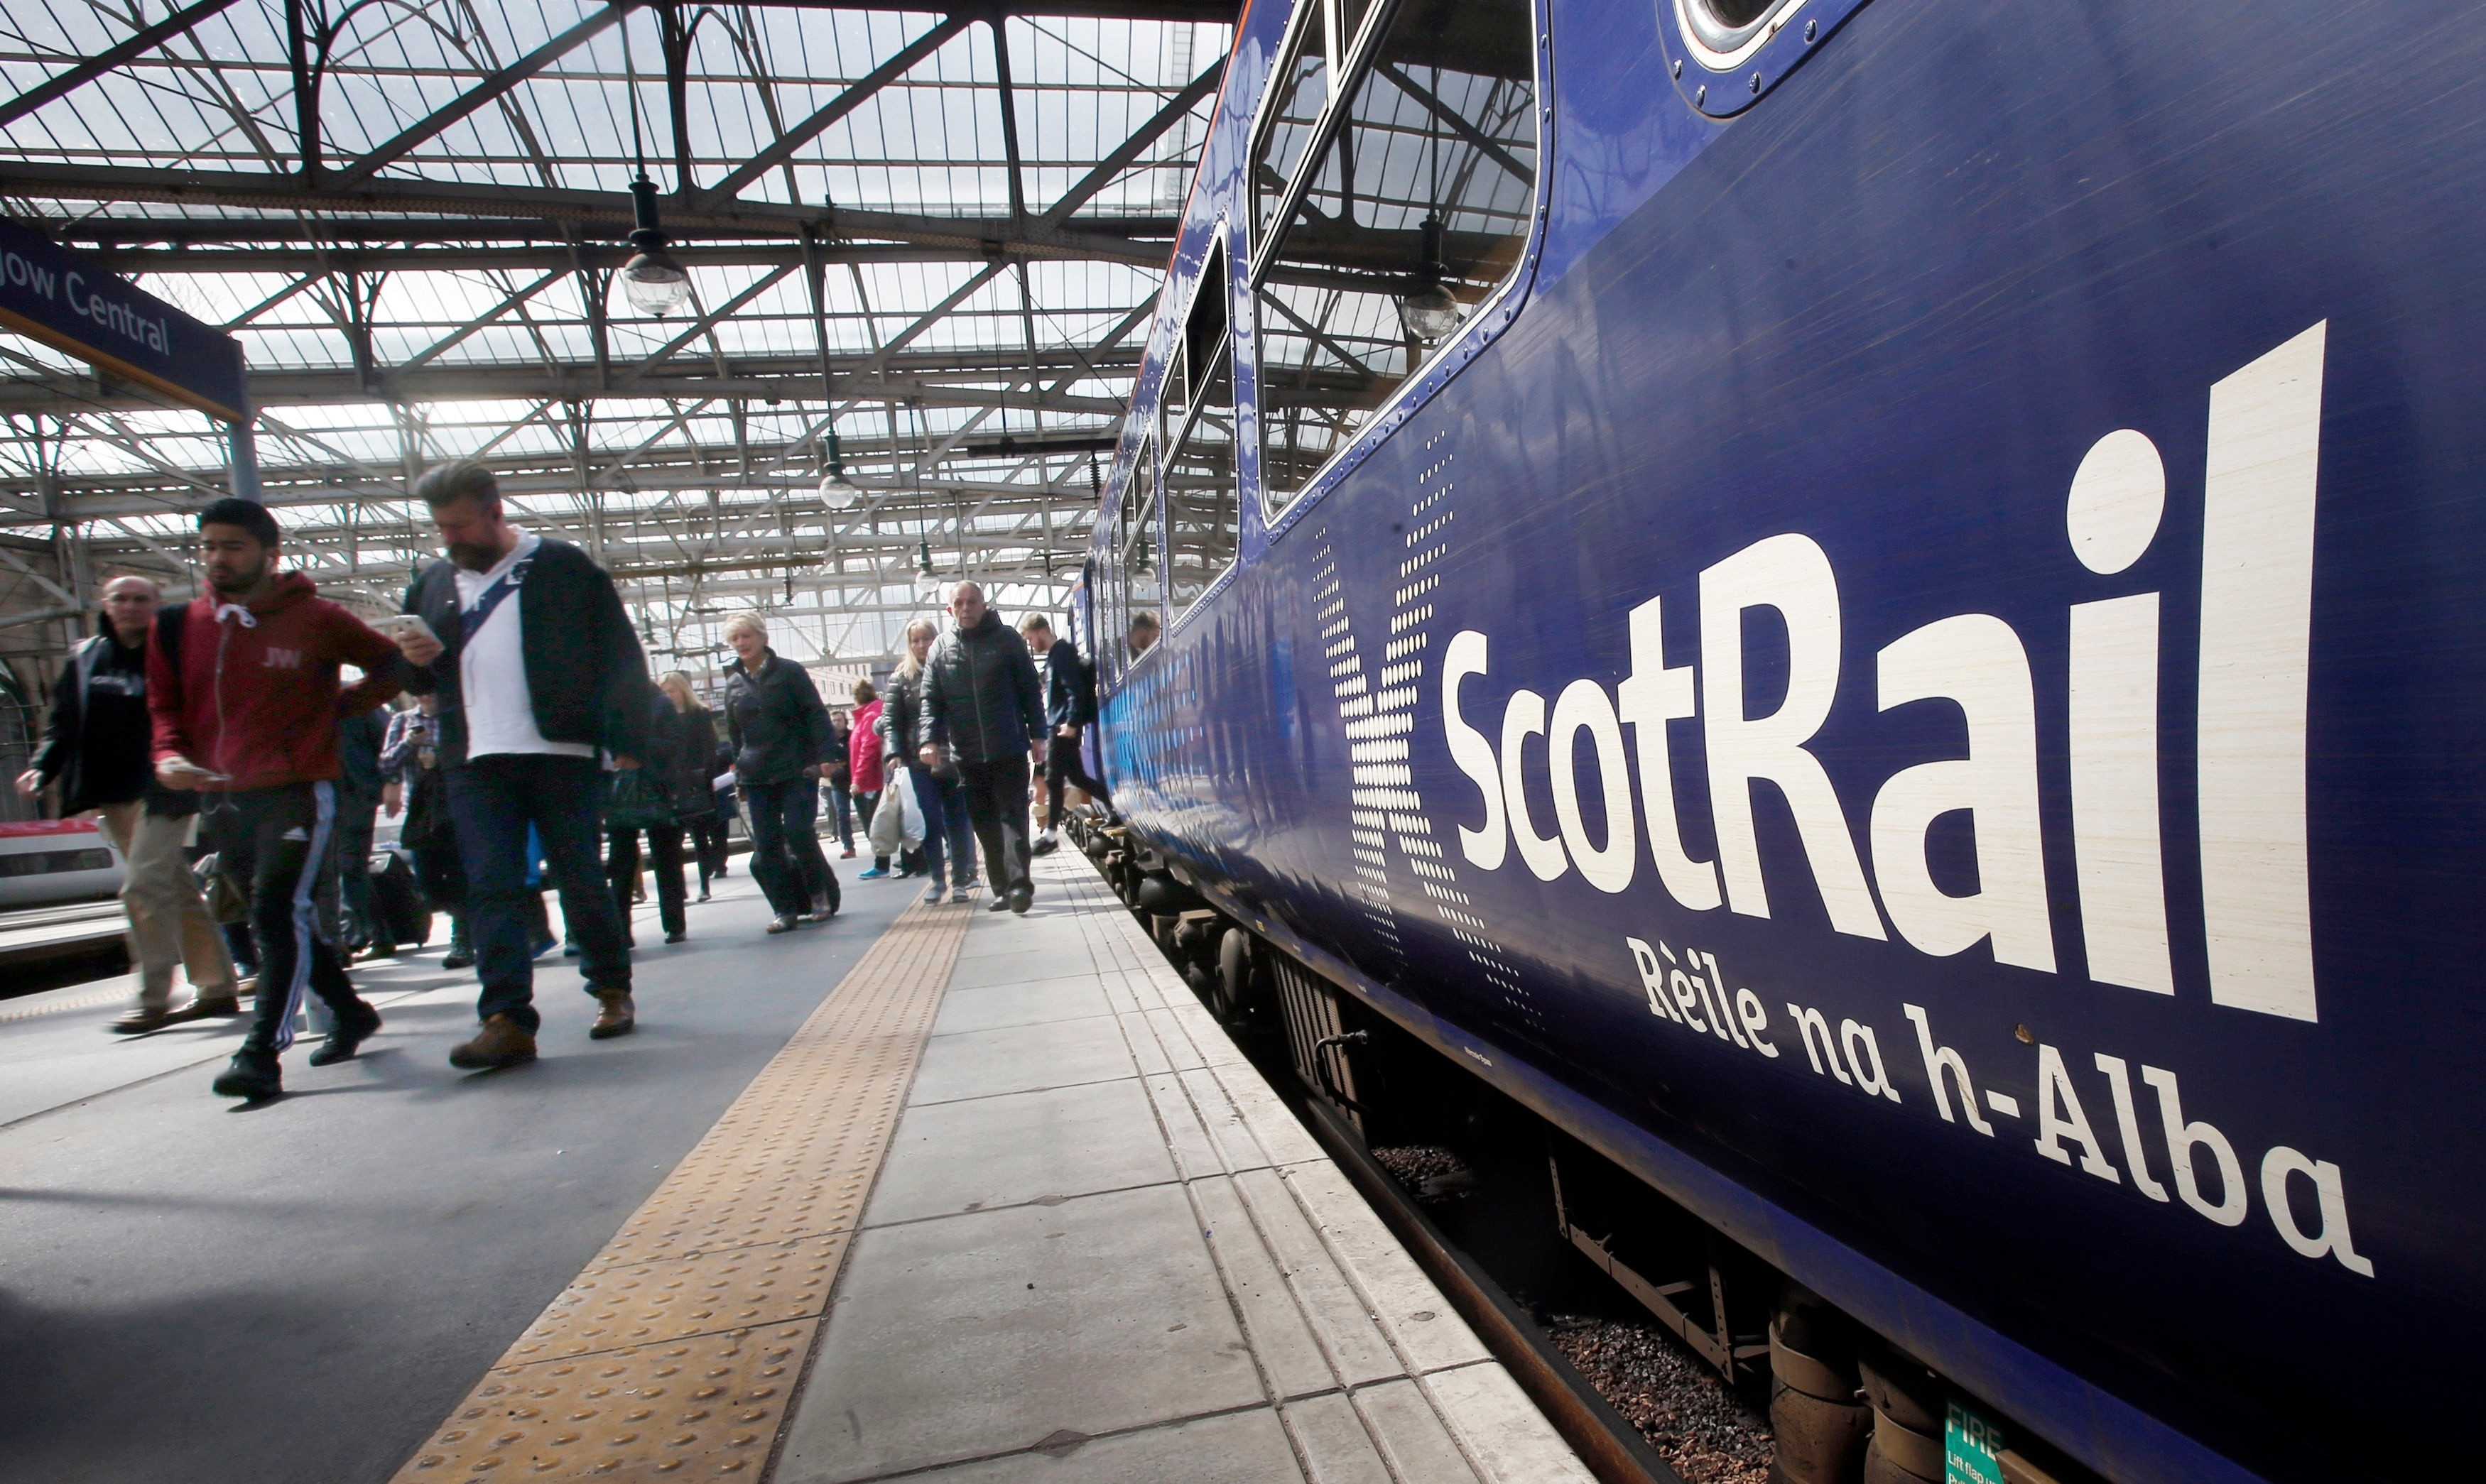 ScotRail receives thousands of applications